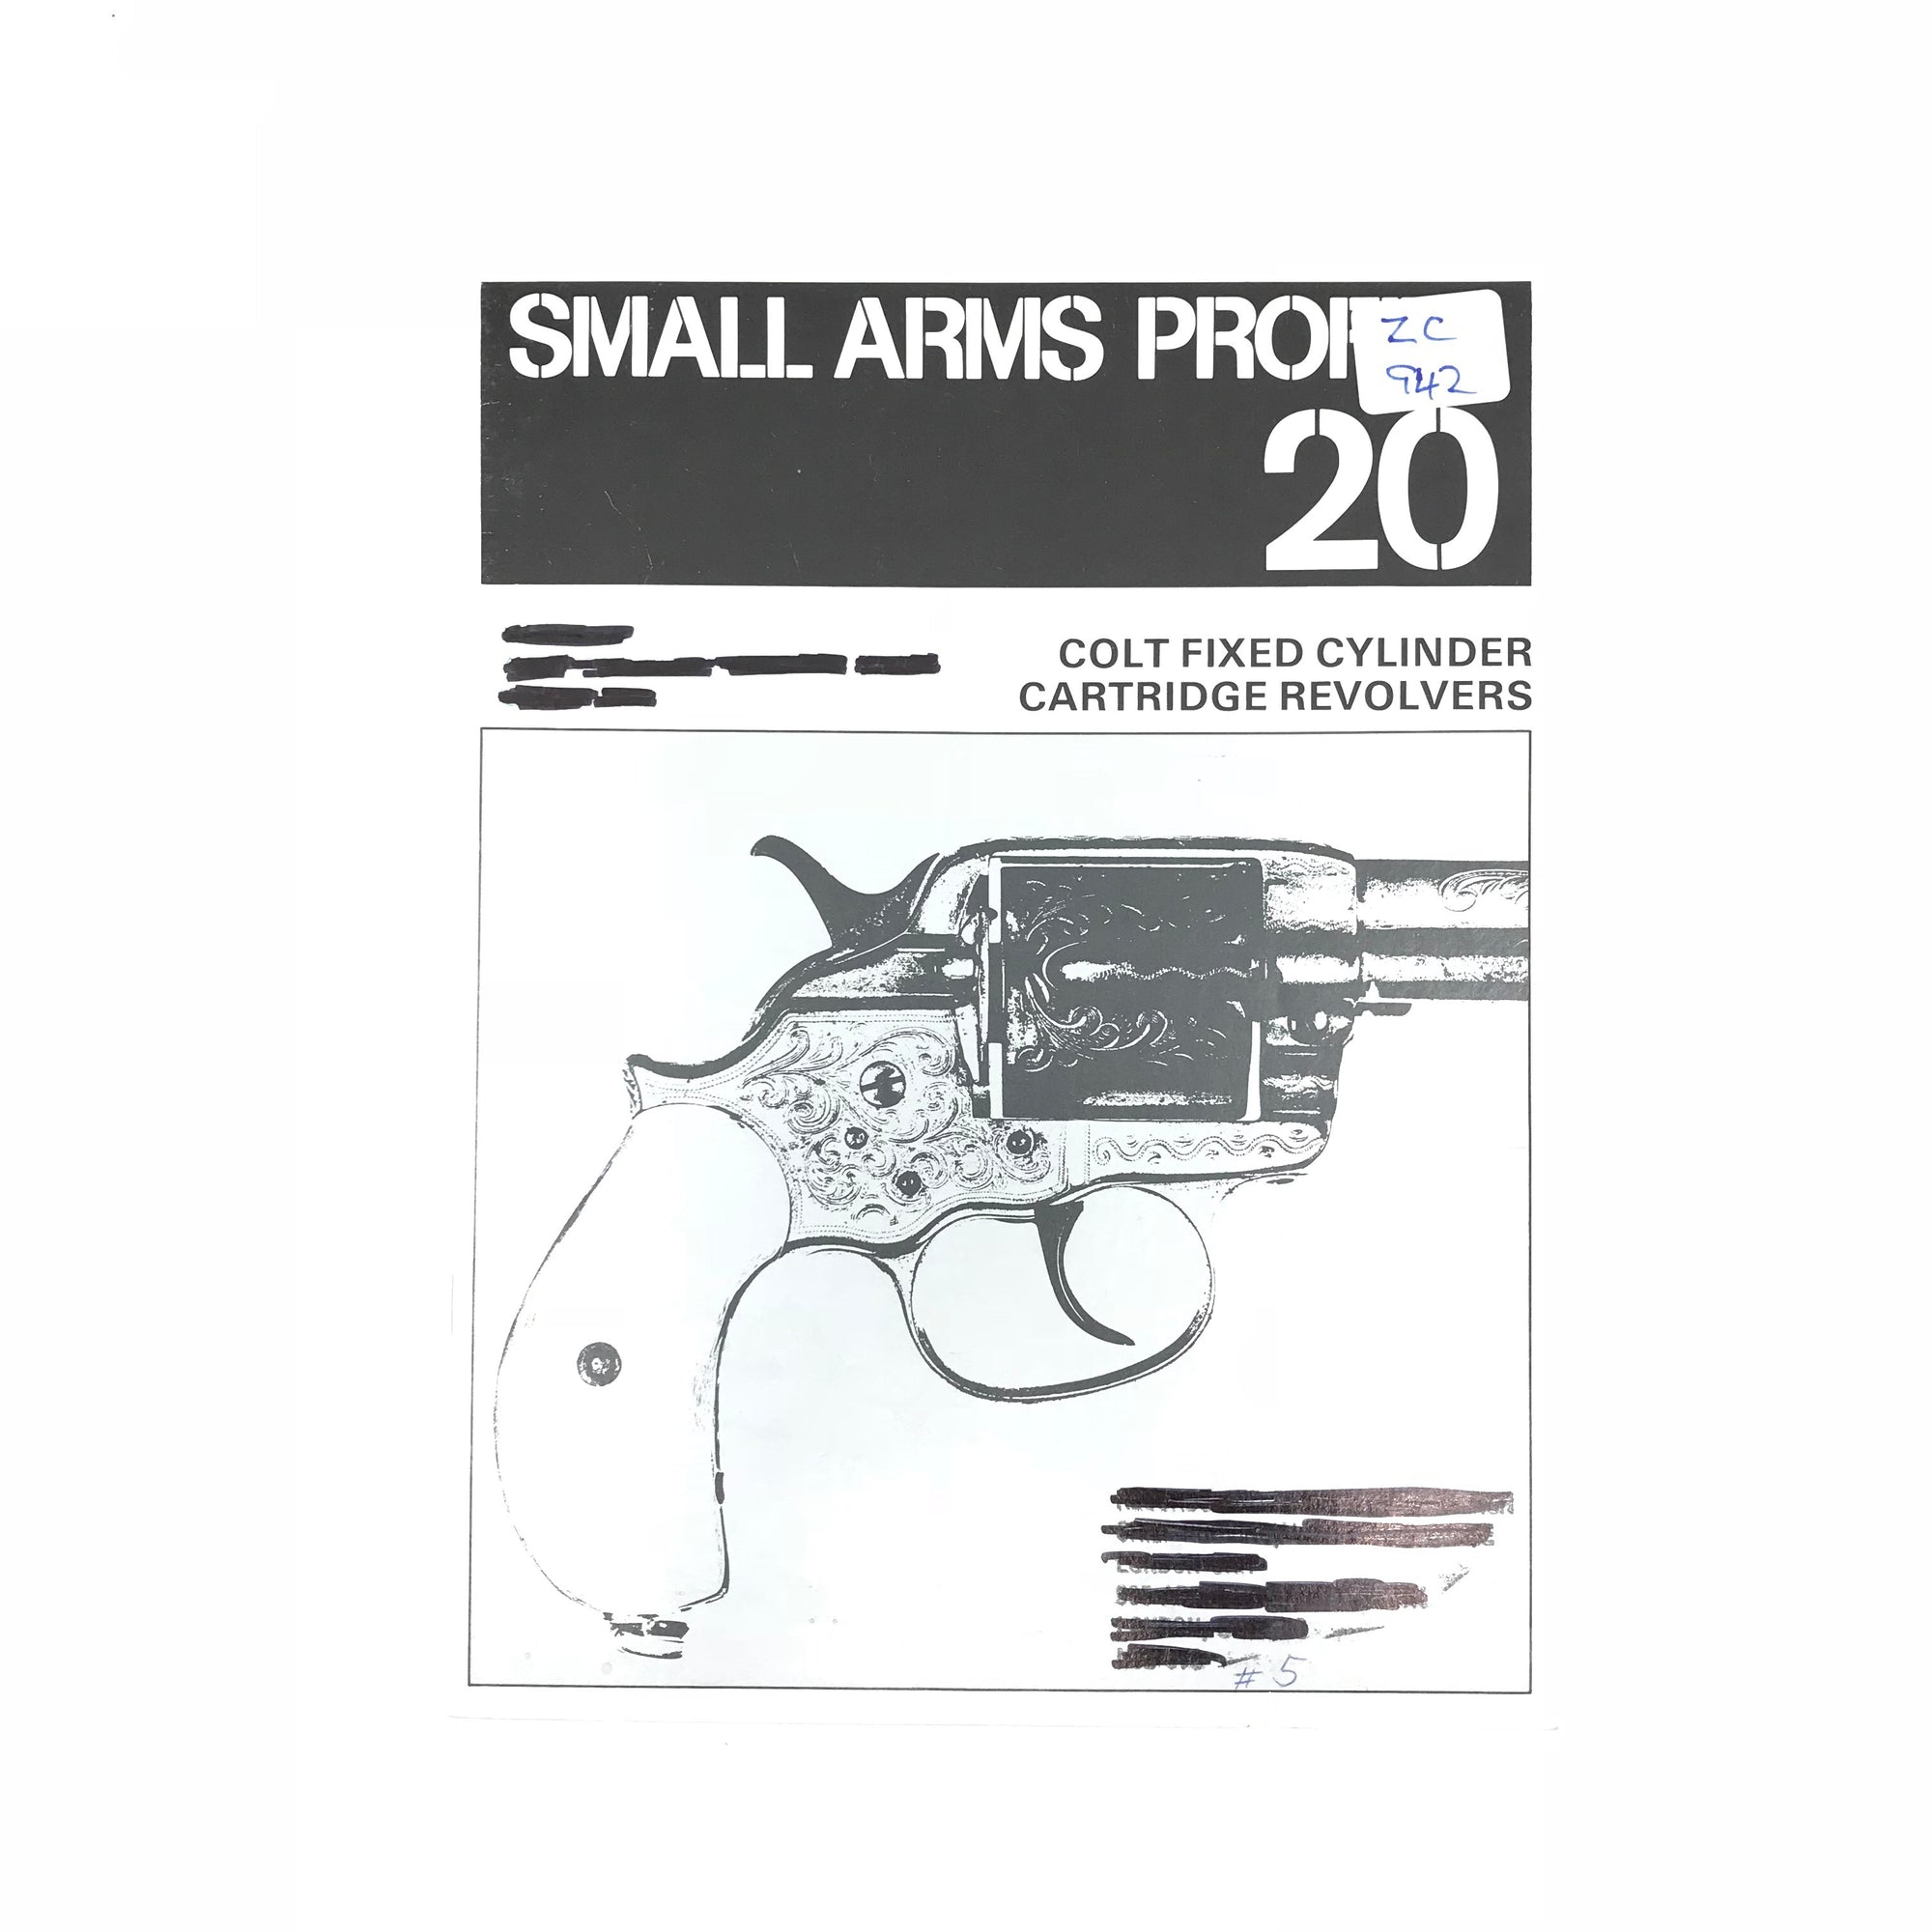 Small Arms Profile 20 Colt Fixed Cylinders Cartridge Revolvers